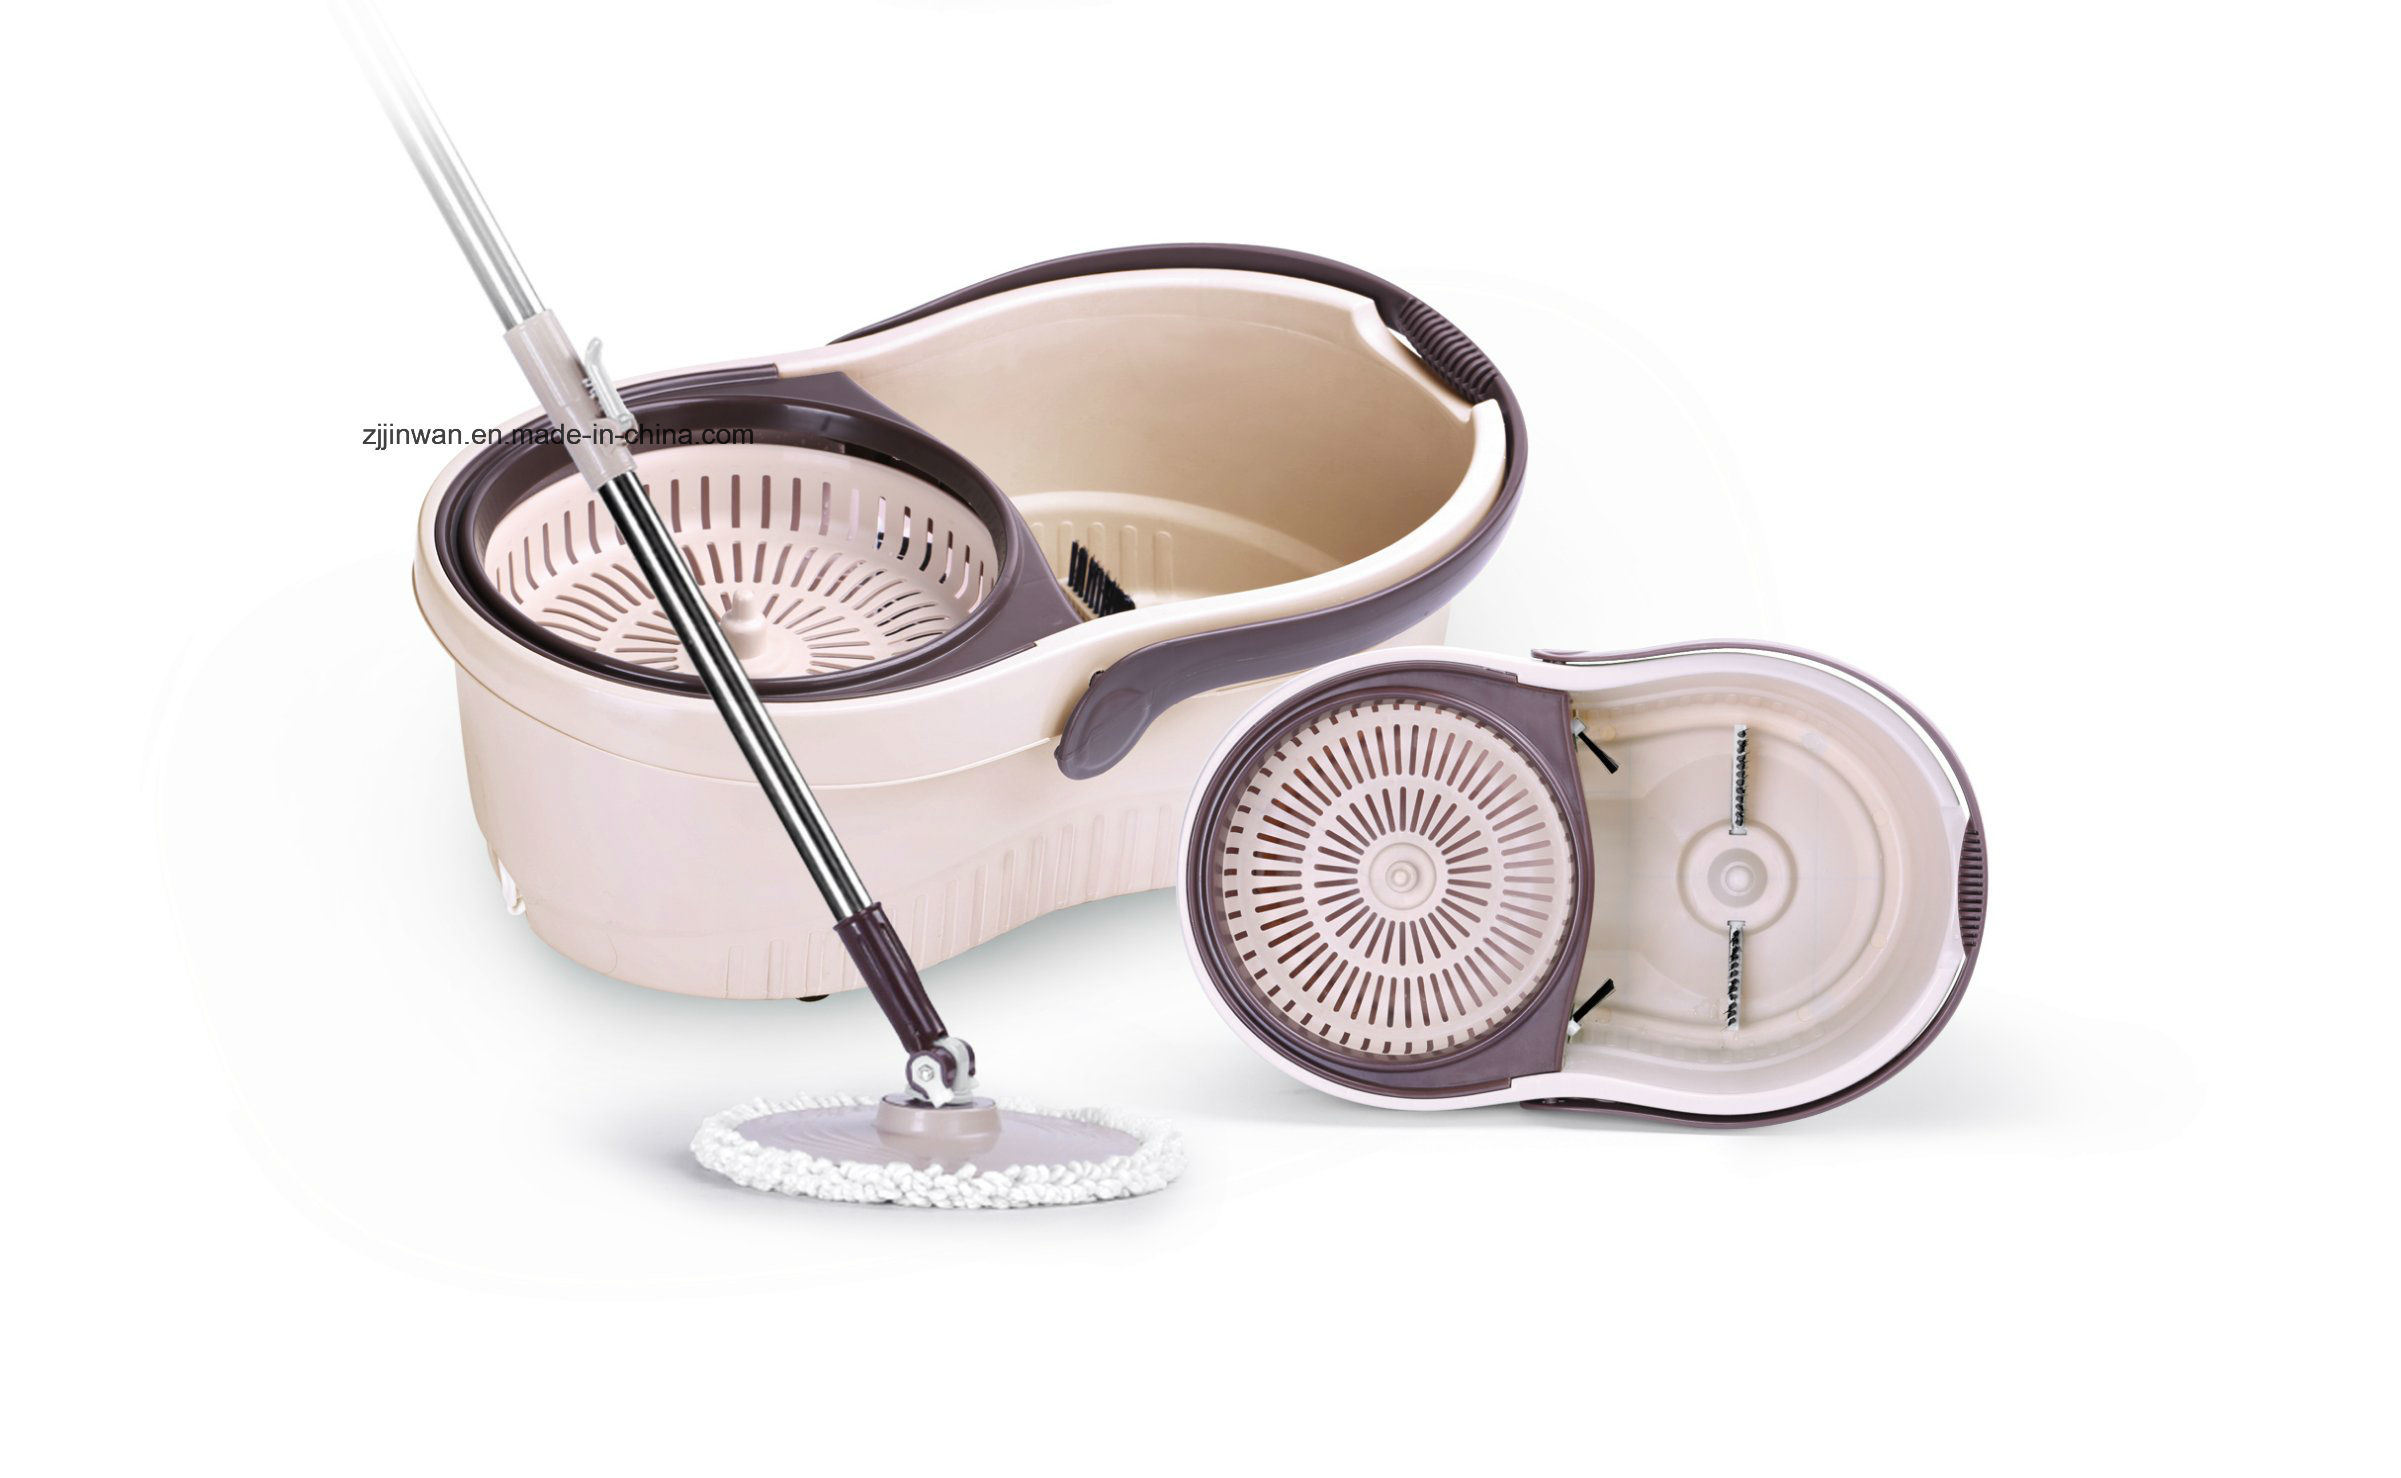 Patend, New, Hot Selling, High Quality Spin Mop